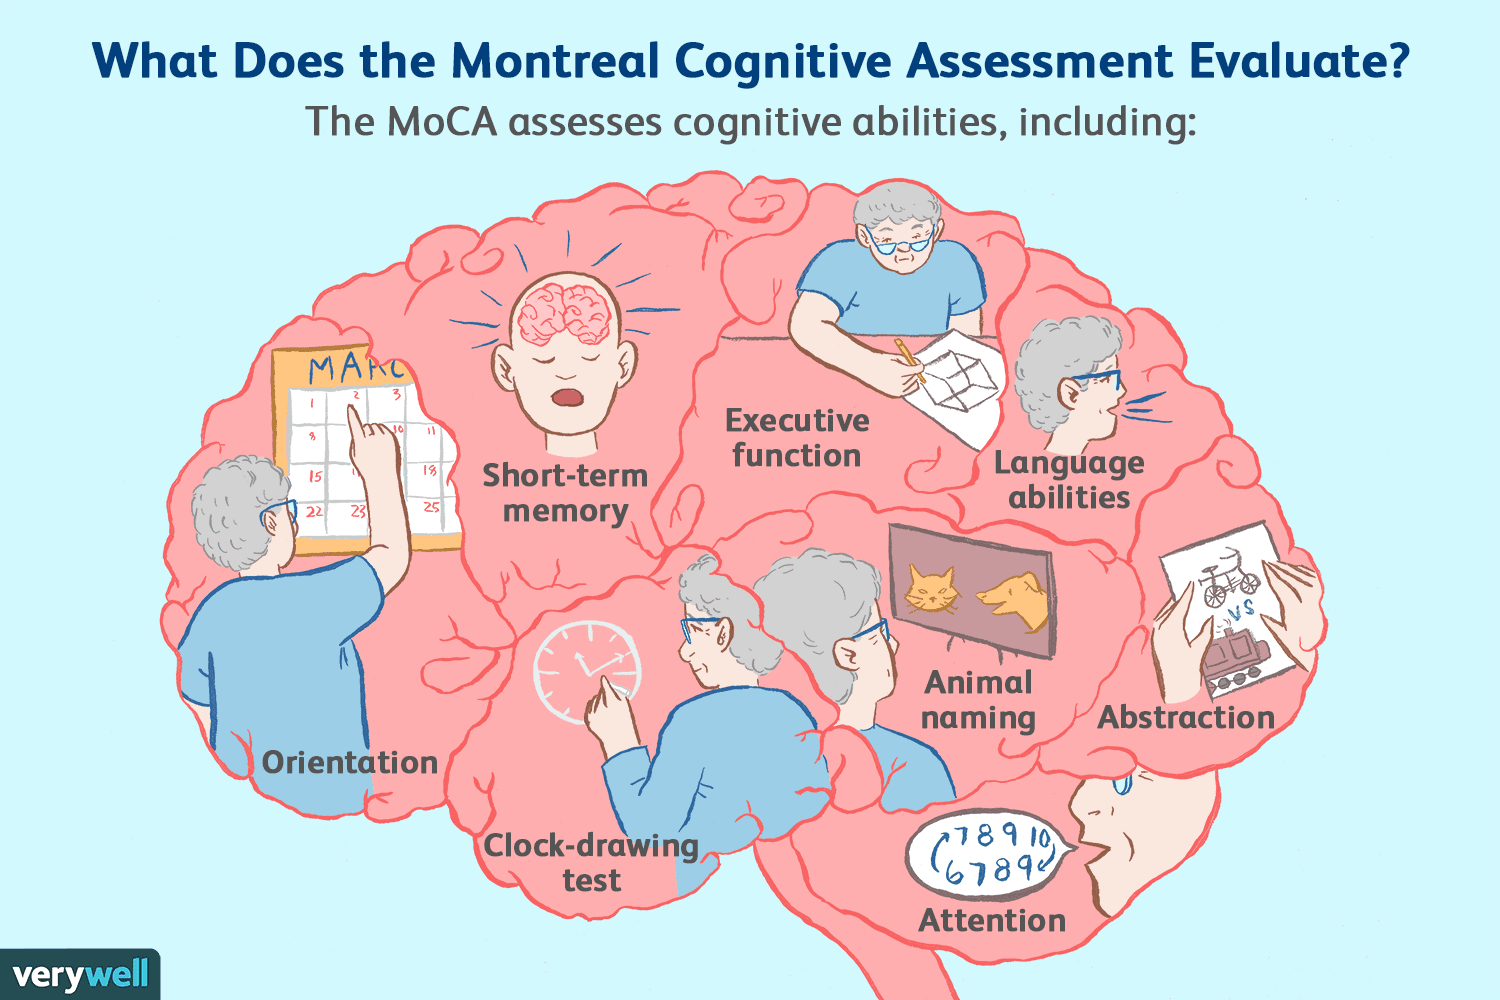 Montreal Cognitive Assessment (MoCA) Test for Dementia